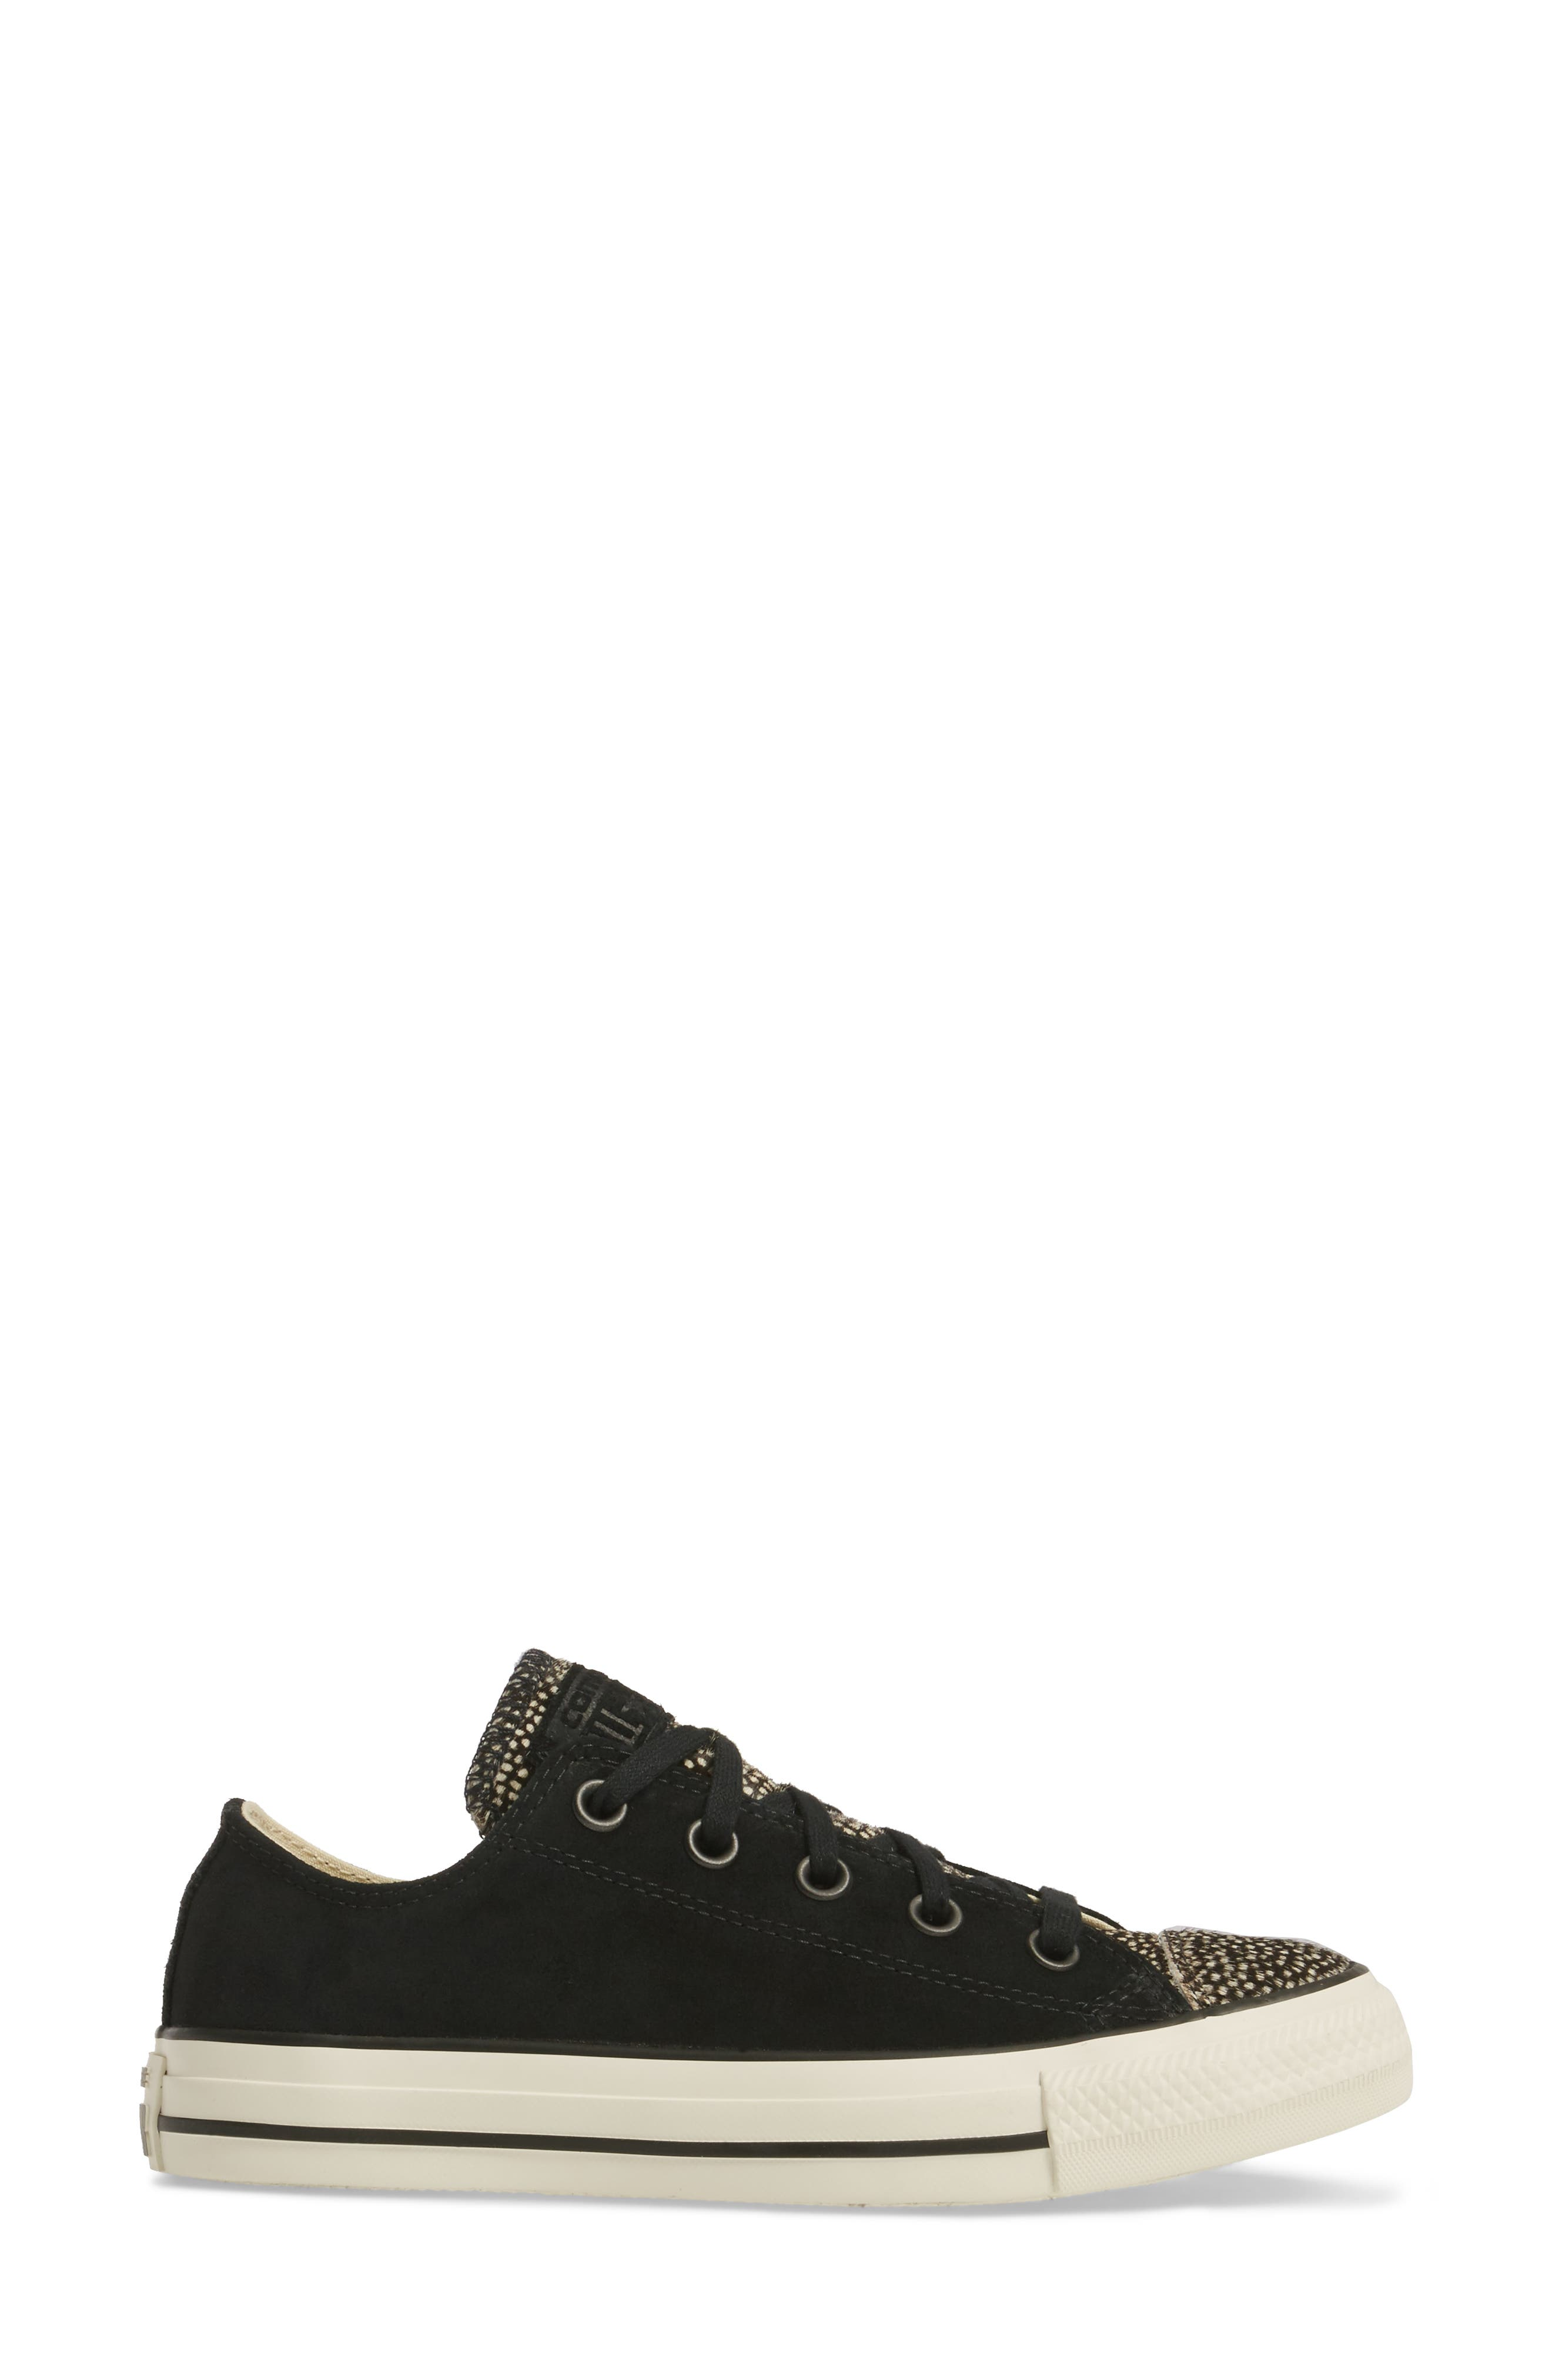 Chuck Taylor<sup>®</sup> All Star<sup>®</sup> Ox Genuine Calf Hair Sneaker,                             Alternate thumbnail 3, color,                             Black